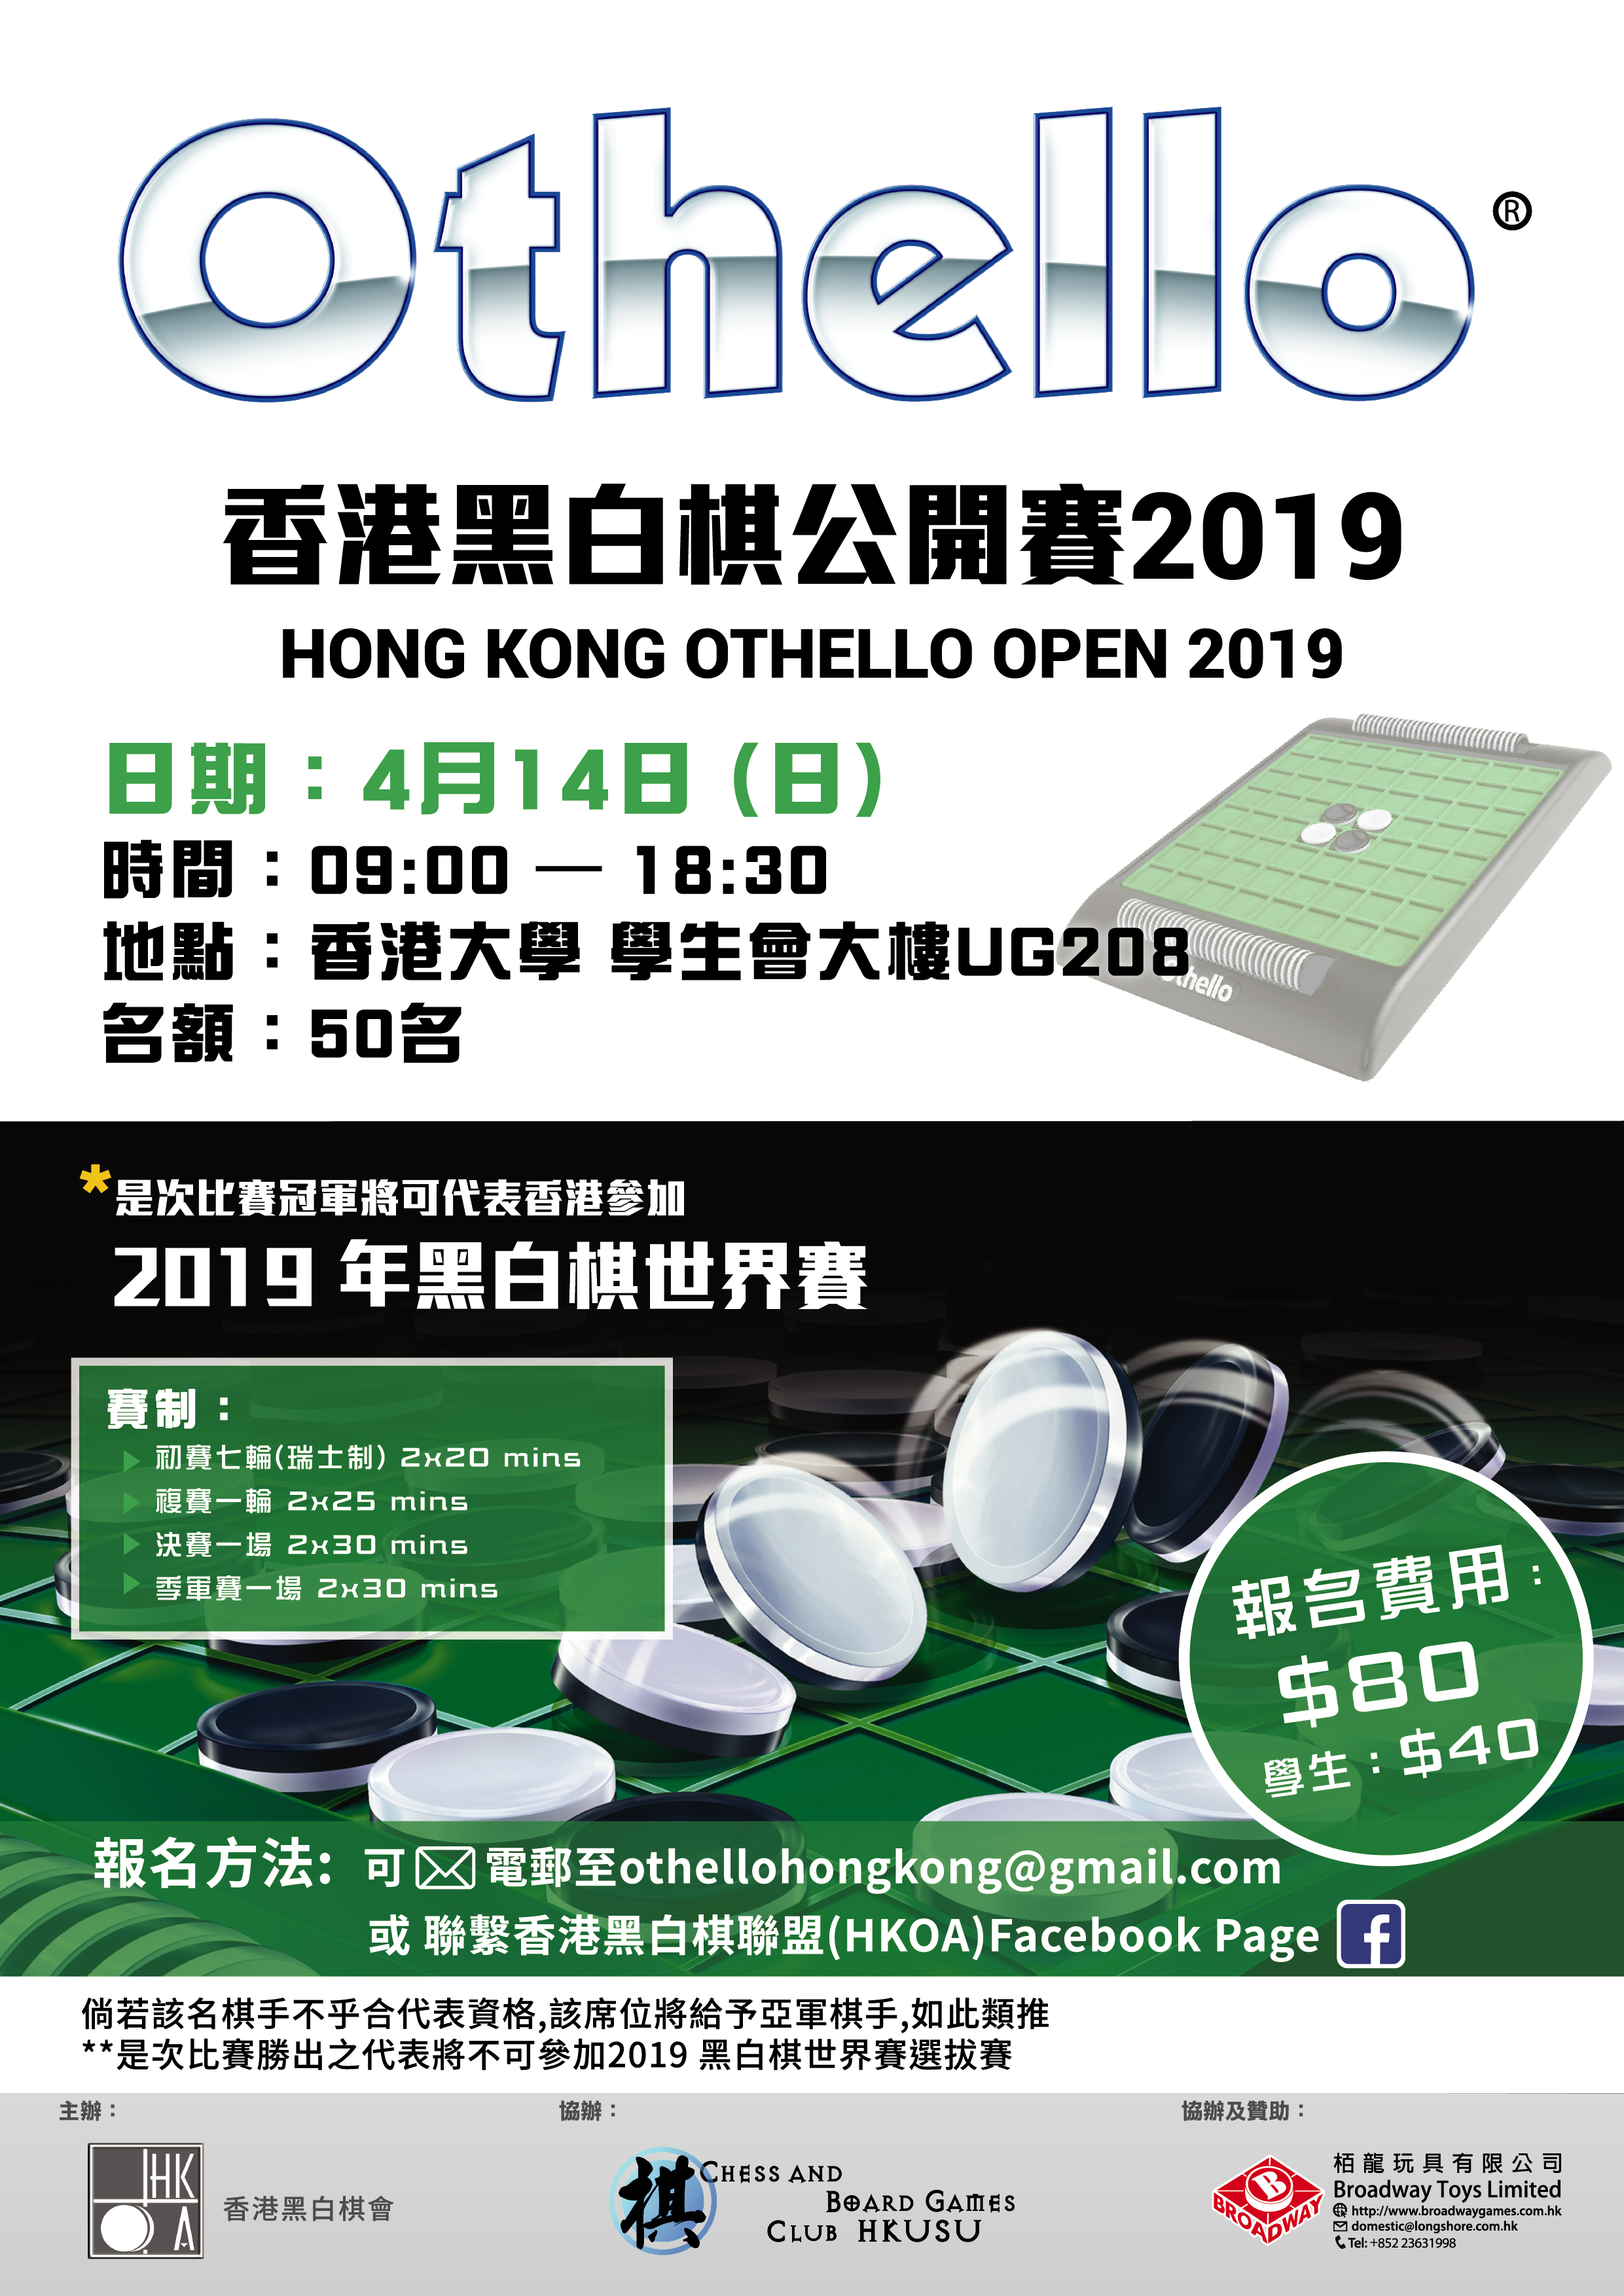 http://broadwaygames.com.hk/wp-content/uploads/2019/03/poster-Othello__HKOA_HKU_2019-OL-A4.png